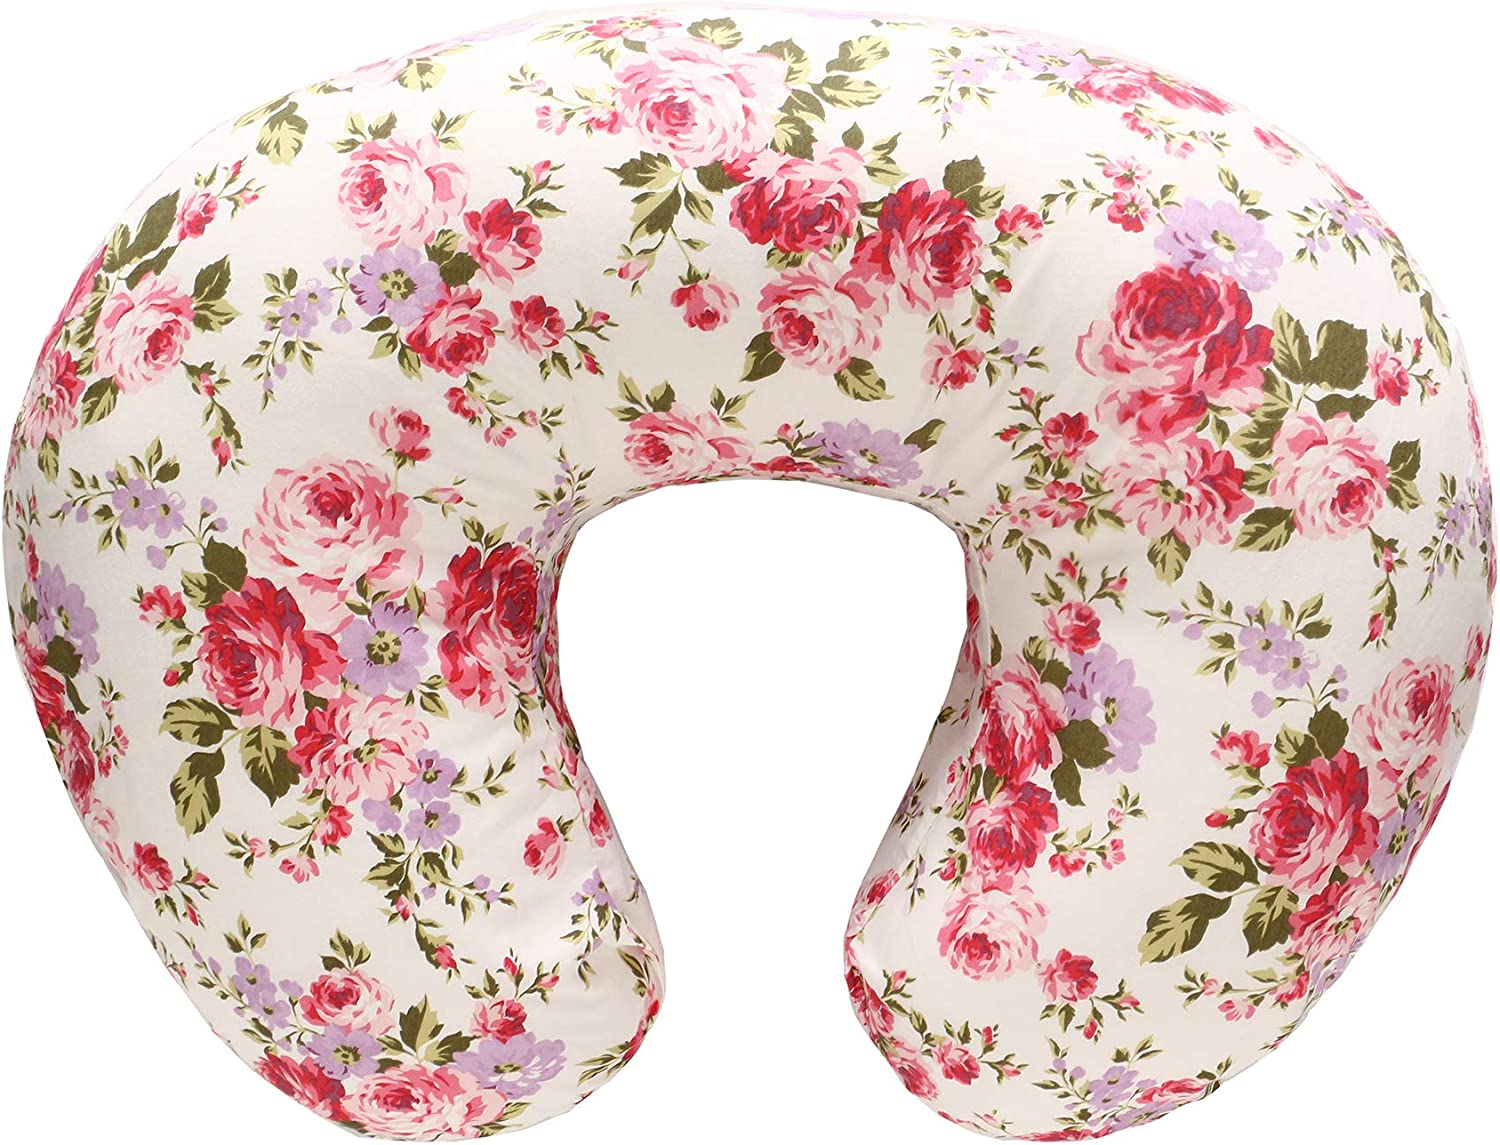 LAT Nursing Pillow Cover, 100% Natural